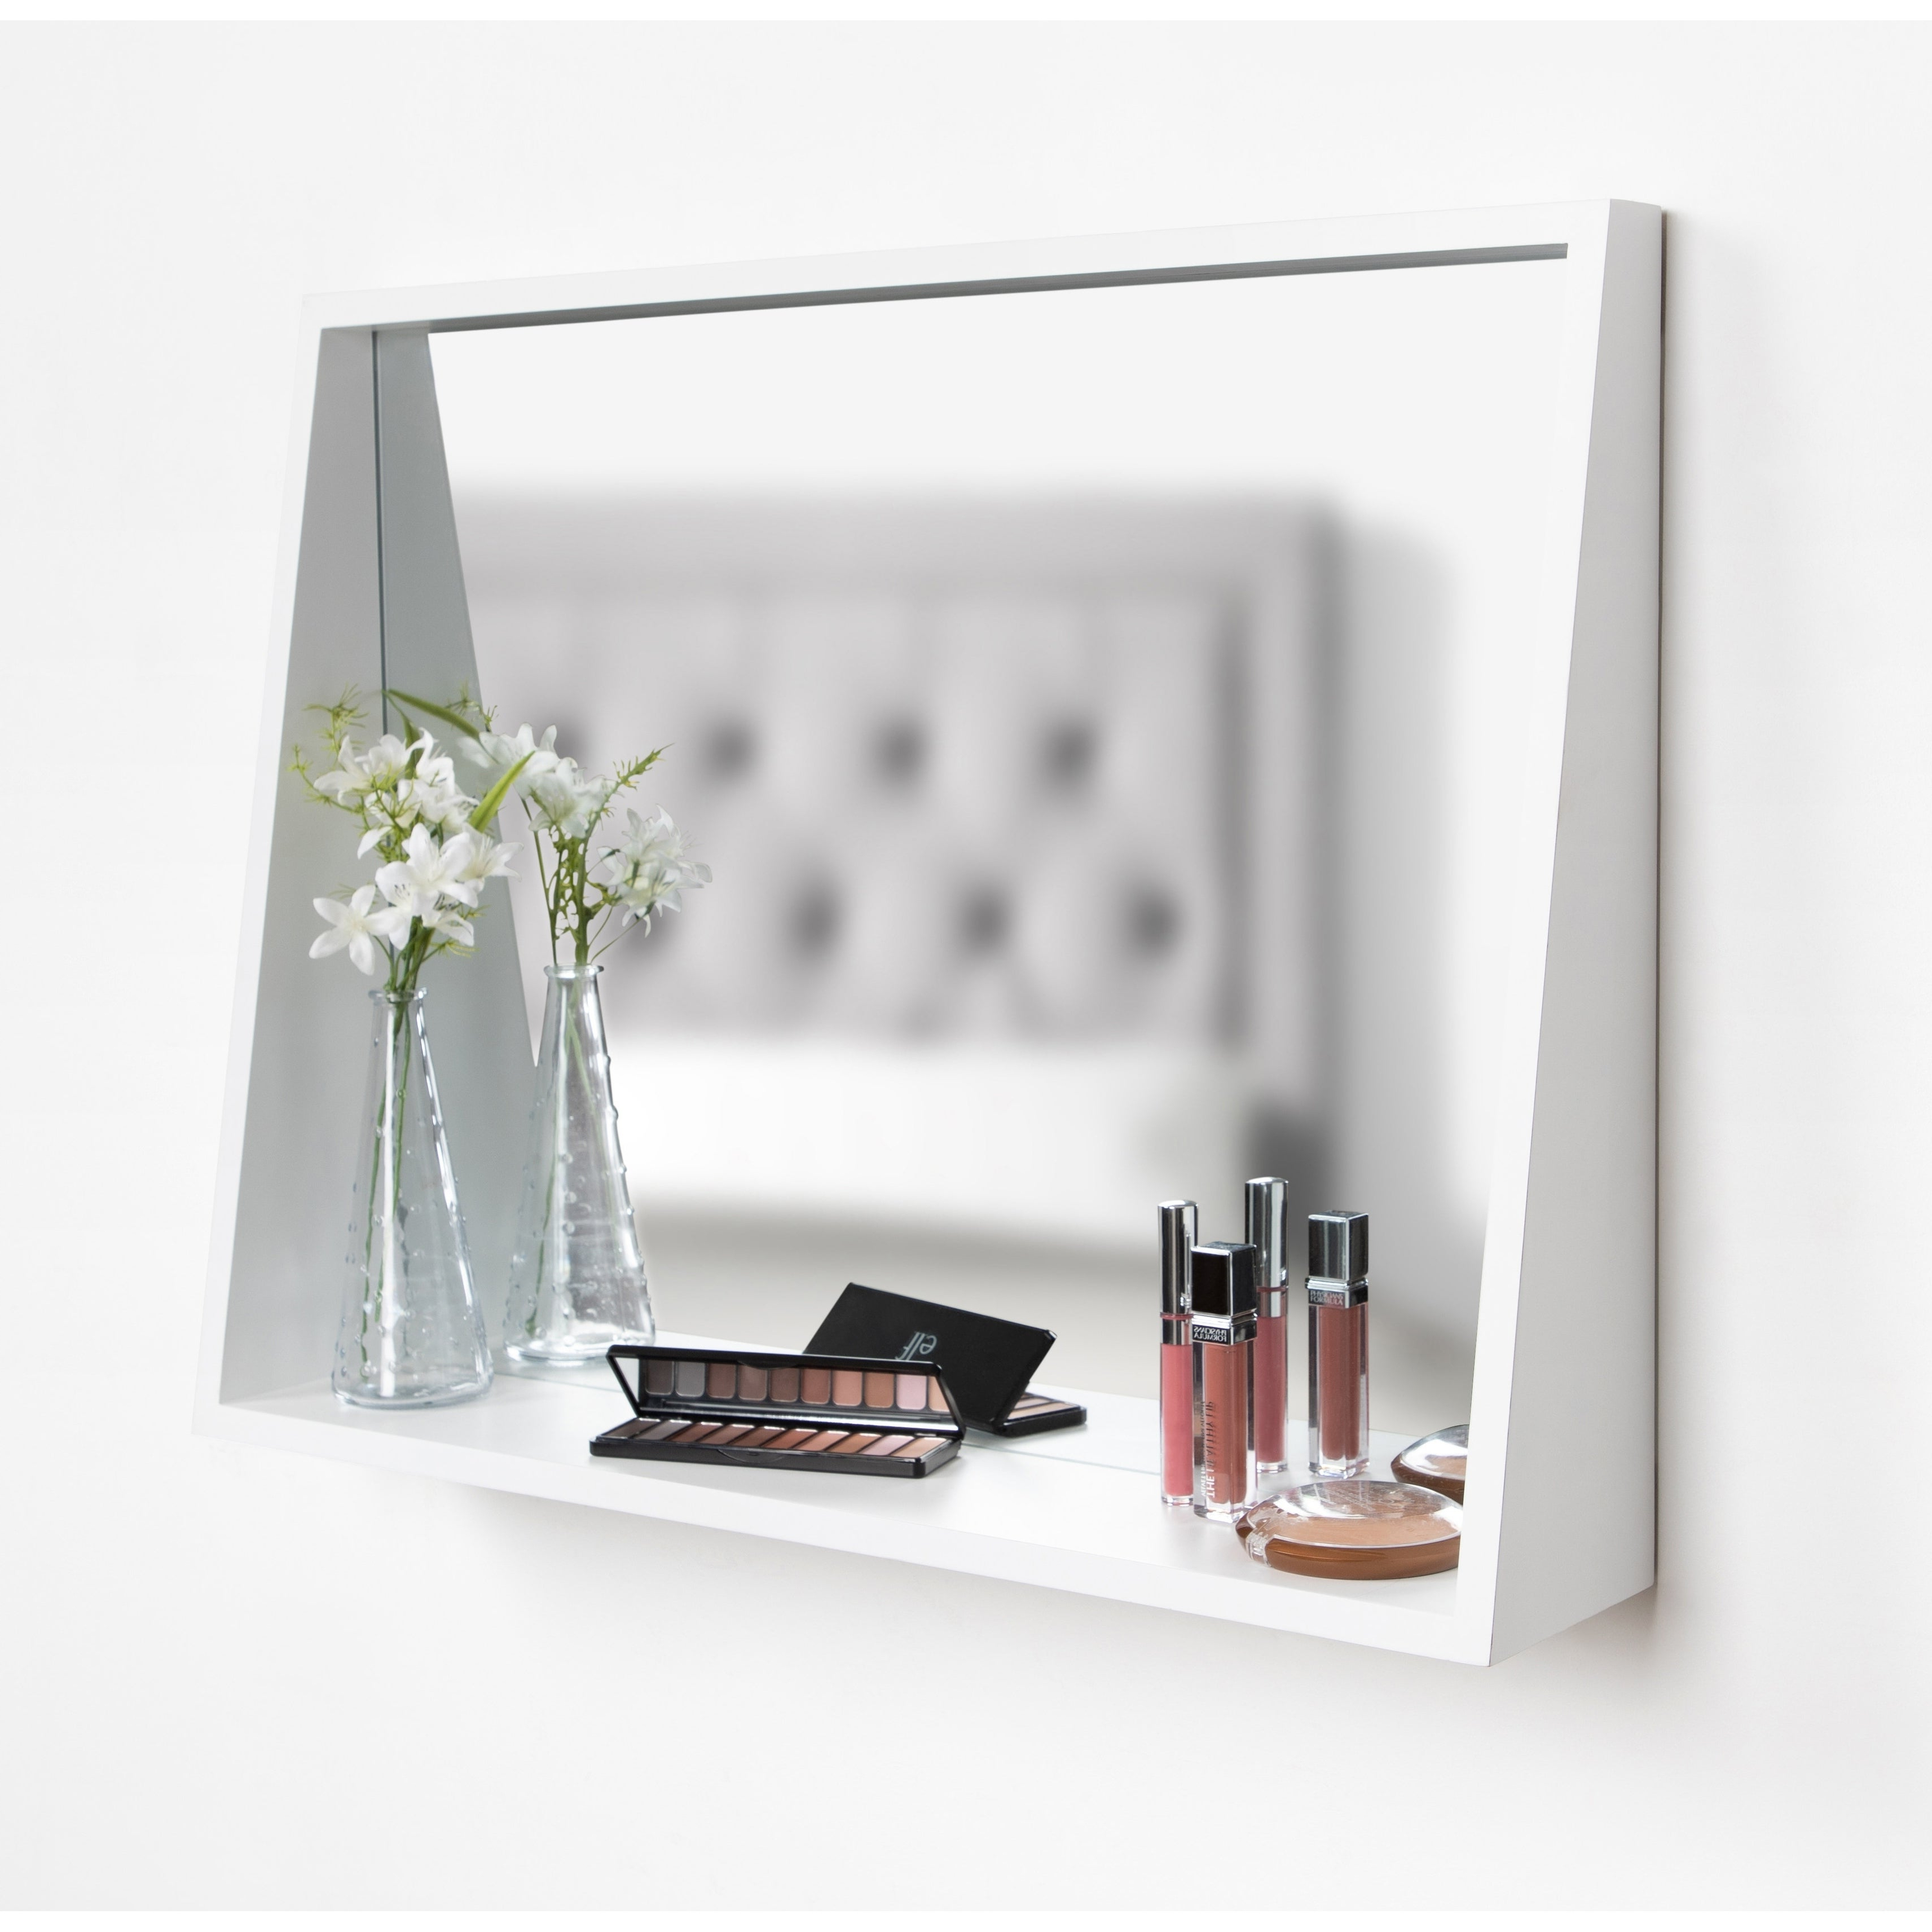 Kate And Laurel Jarden Recessed Wall Mirror With Shelf – White – 20x26 With Current Wall Mirrors With Shelf (View 20 of 20)